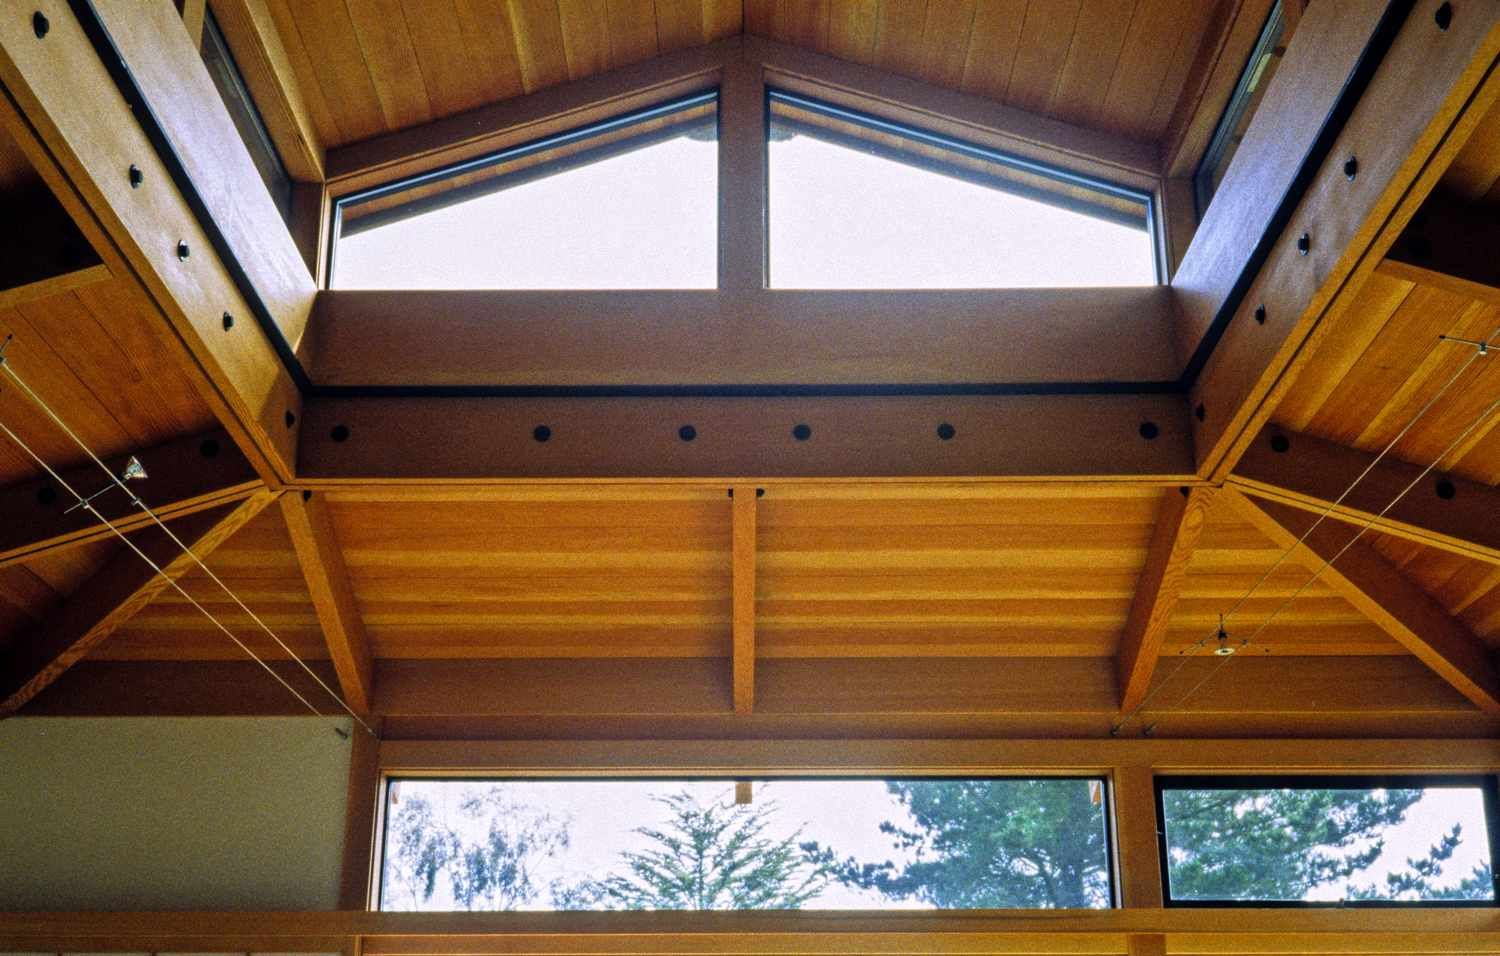 Clerestory Windows Clerestory Windows Lighten The Connection Between Roof And